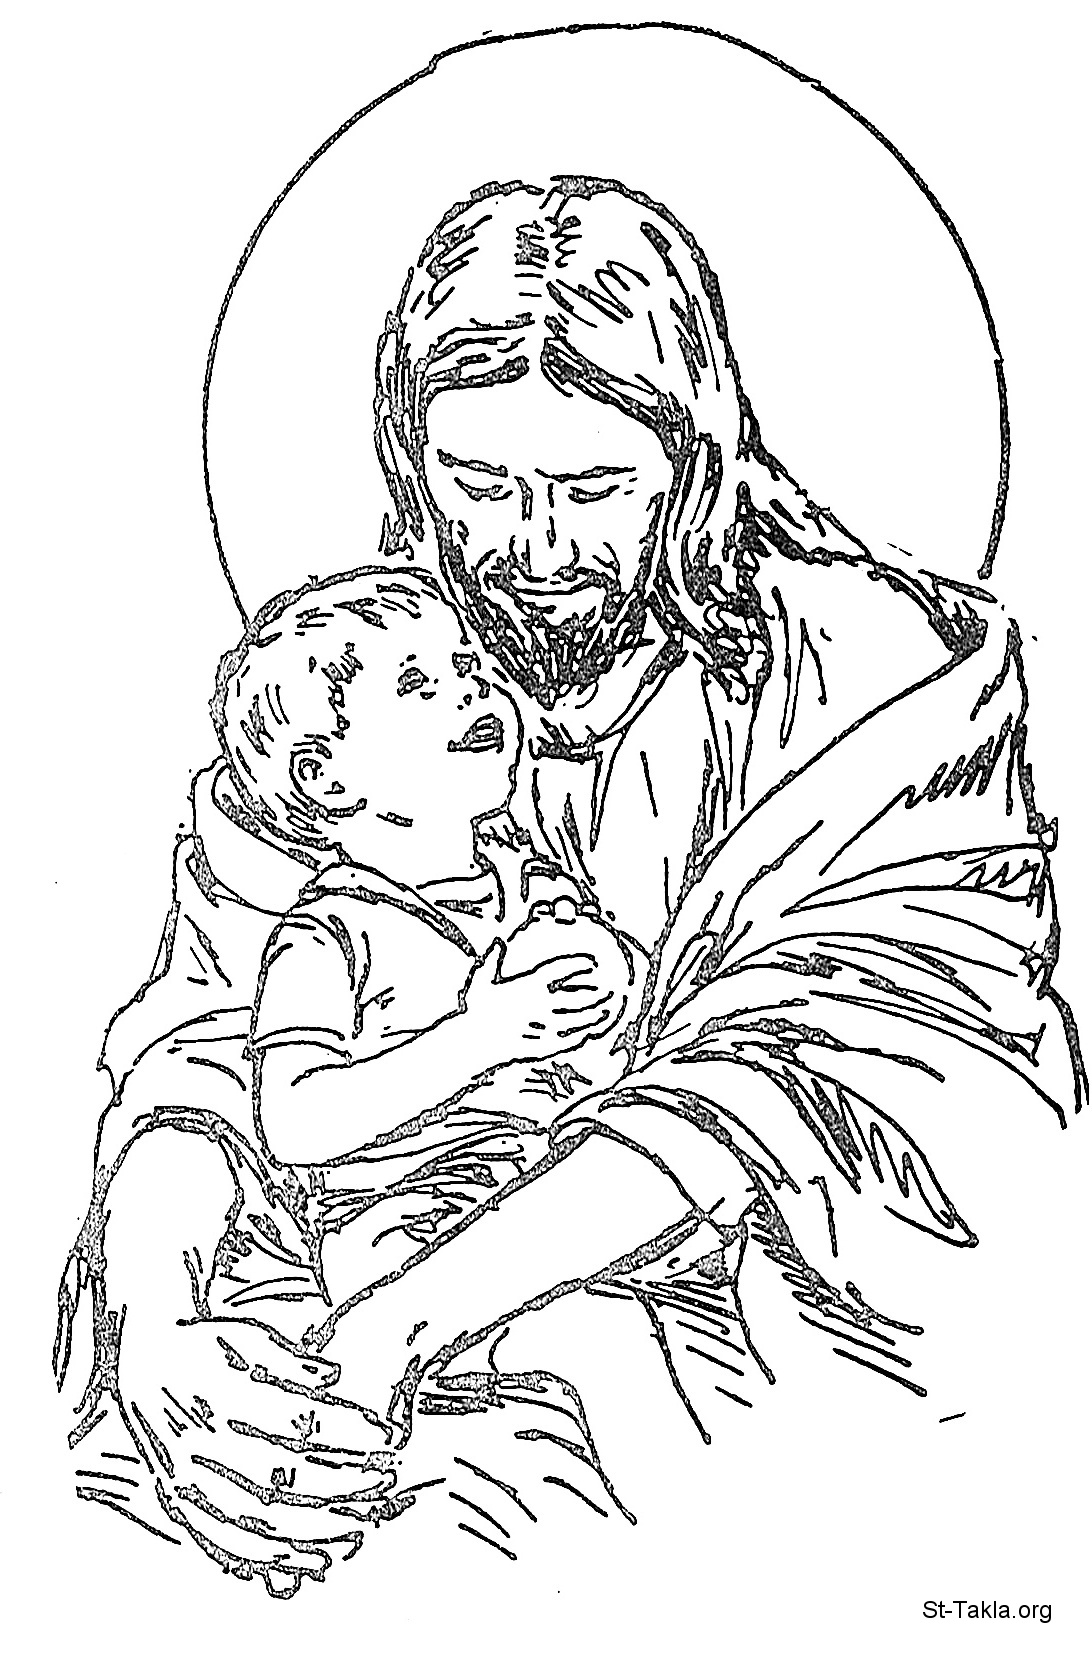 coloring pages for children to color | Image: Jesus Child 06